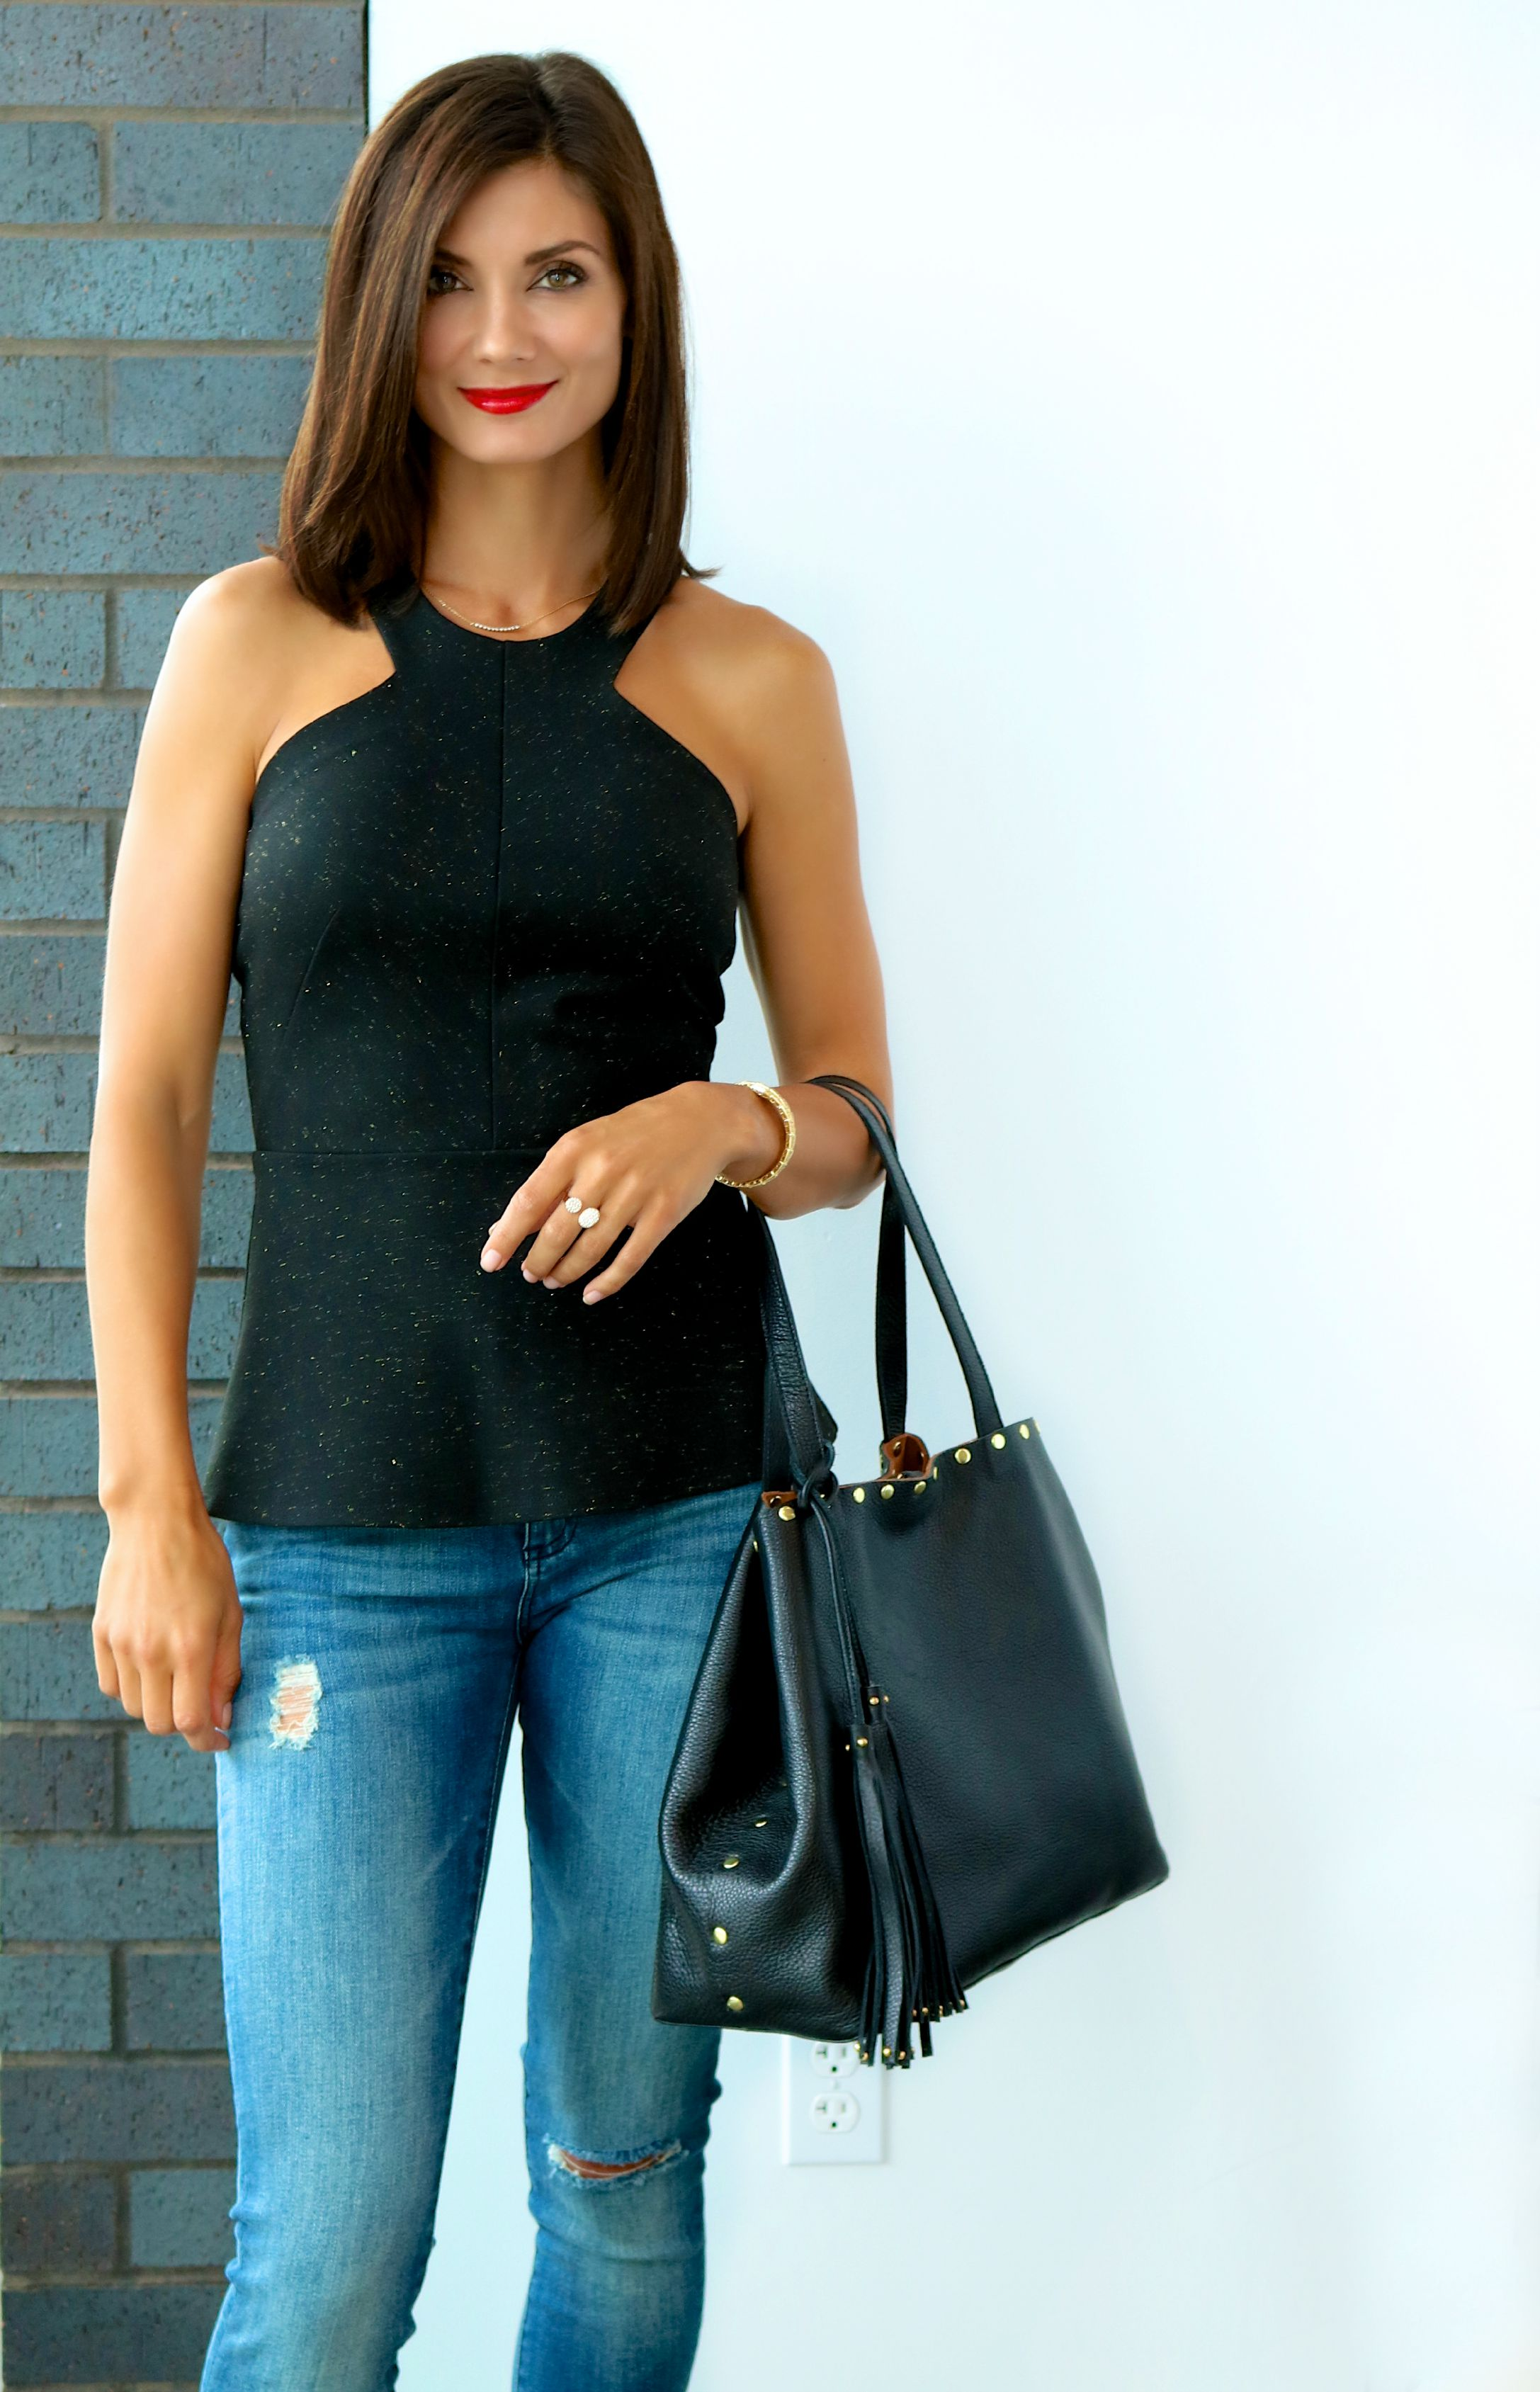 AMMARA Ponte Peplum in Black Available In Store Only - Hurry! One Left! LAGGO Leather Bag In Store Only